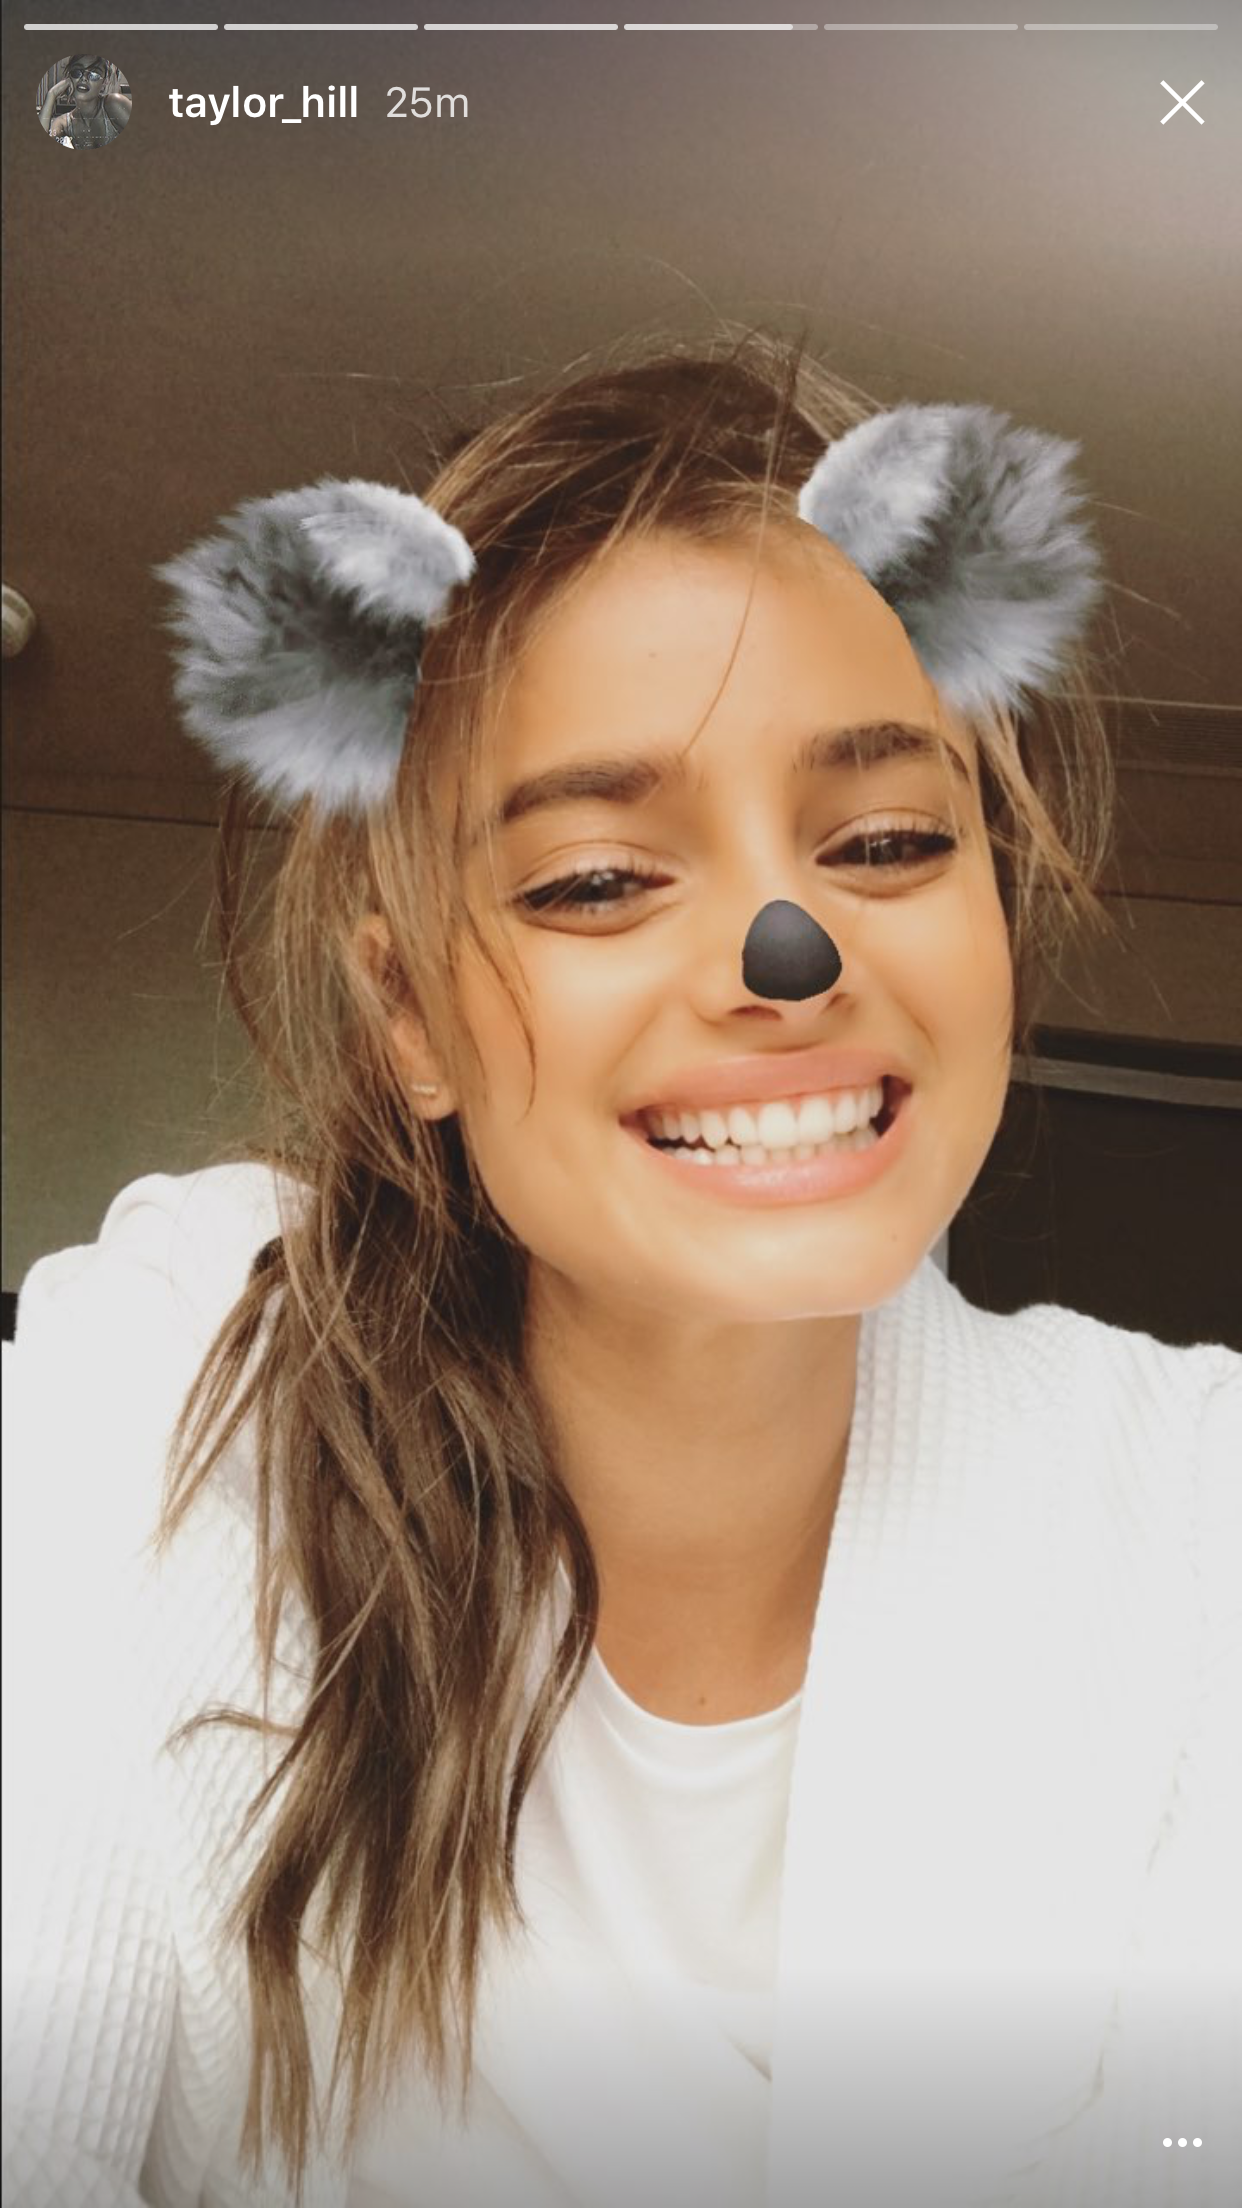 Fappening Taylor Marie Hill nudes (39 foto and video), Ass, Sideboobs, Selfie, in bikini 2015